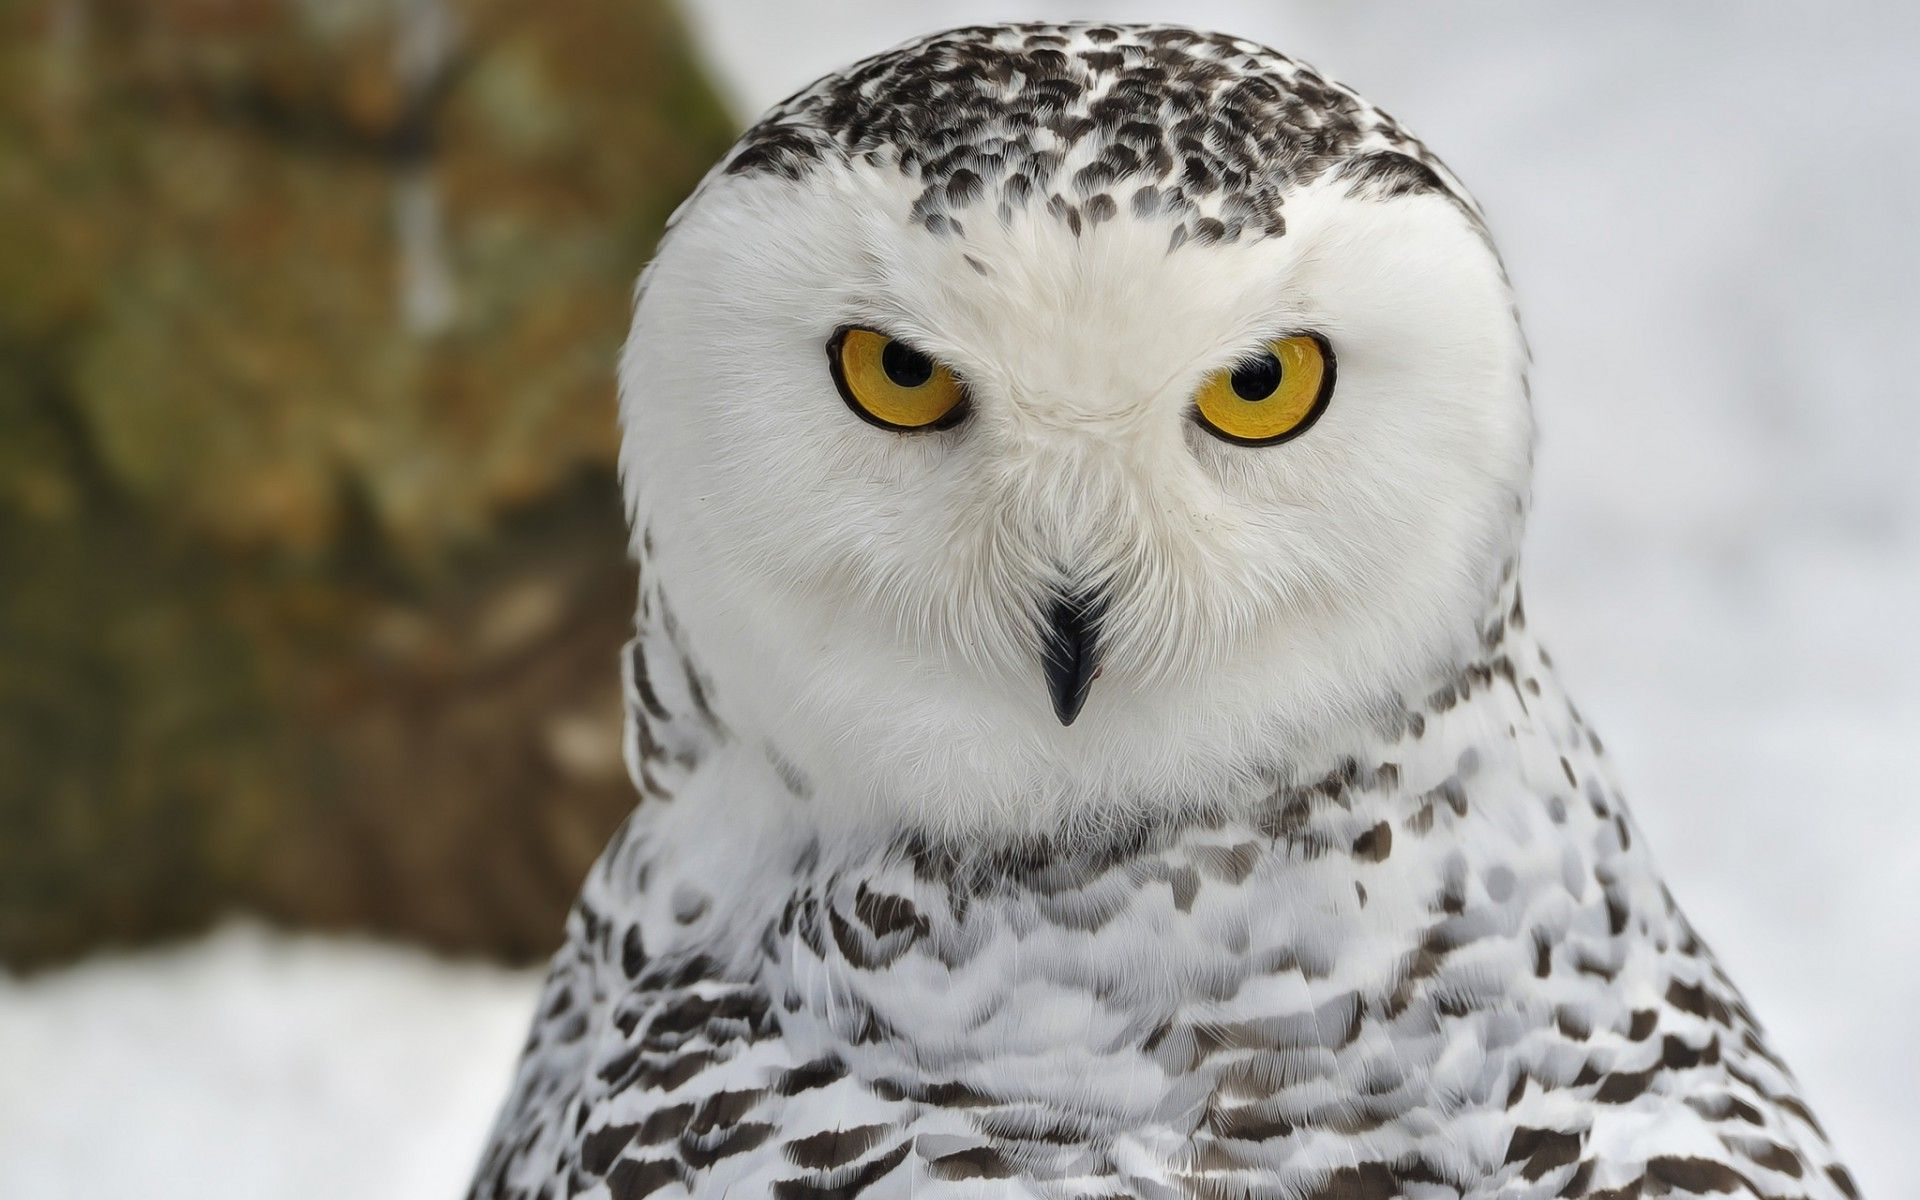 White Owl HD Wallpaper pictures images.